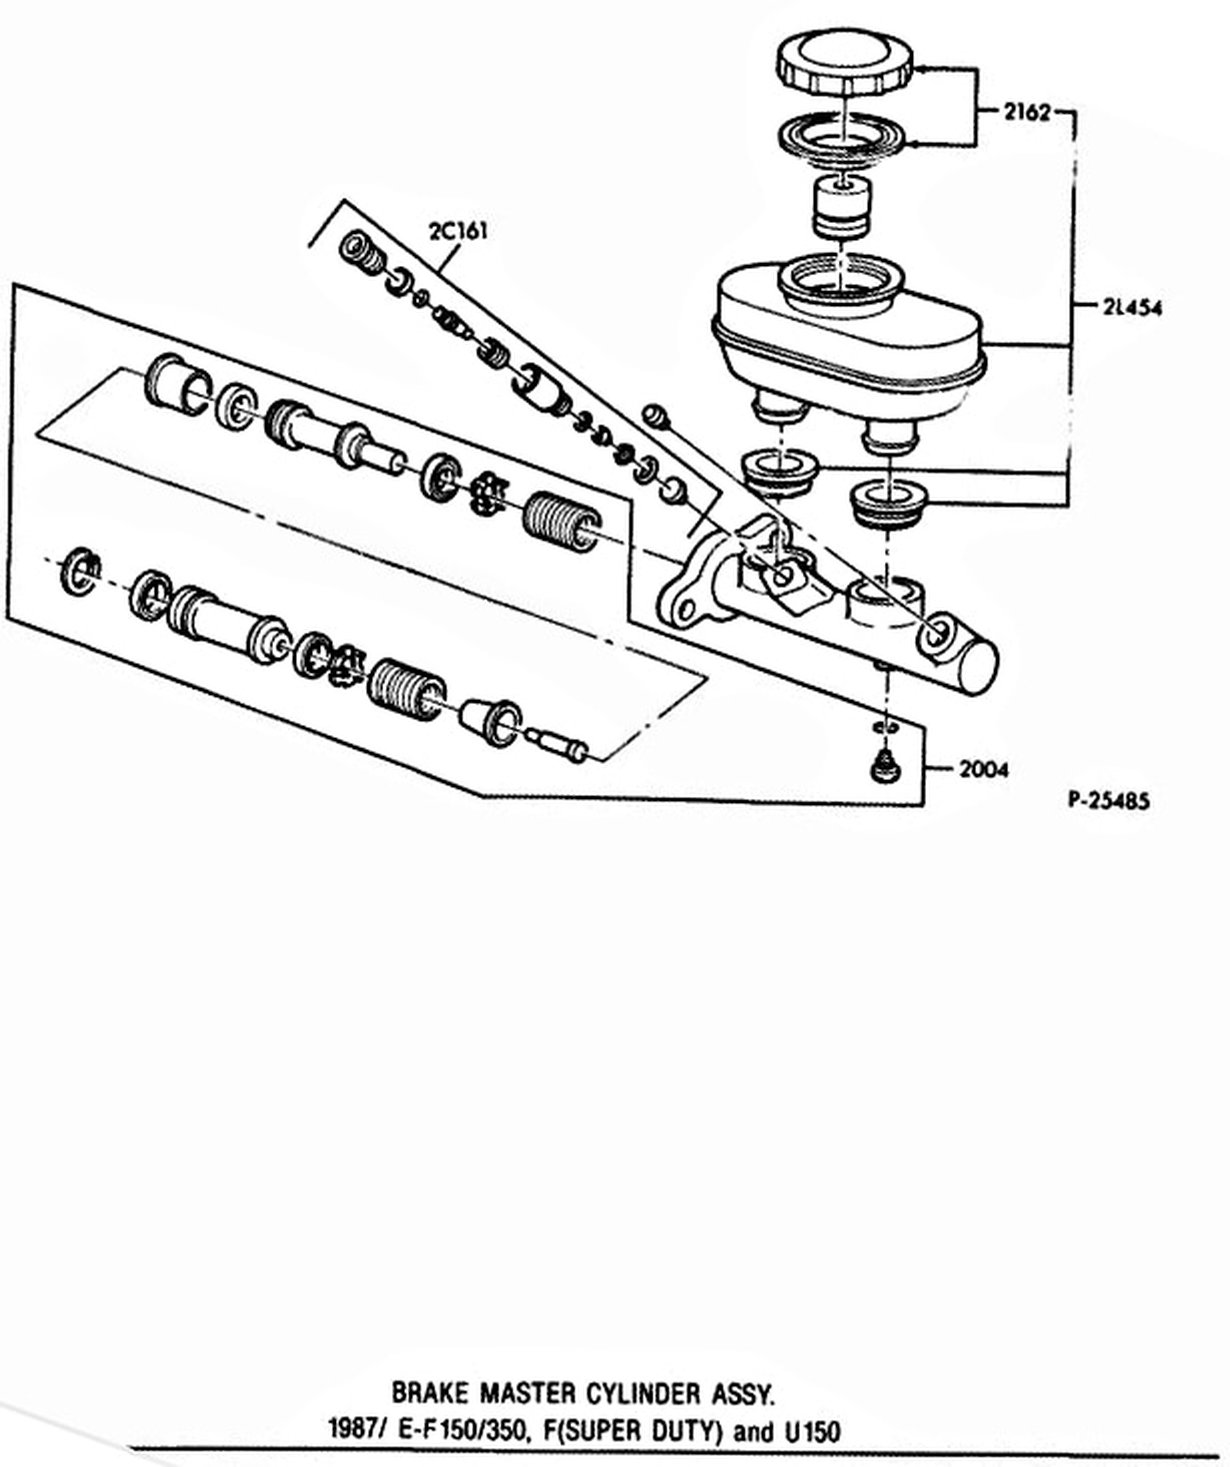 small resolution of the push rod has an adjustment screw to maintain the correct relationship between the booster control valve plunger and the master cylinder piston